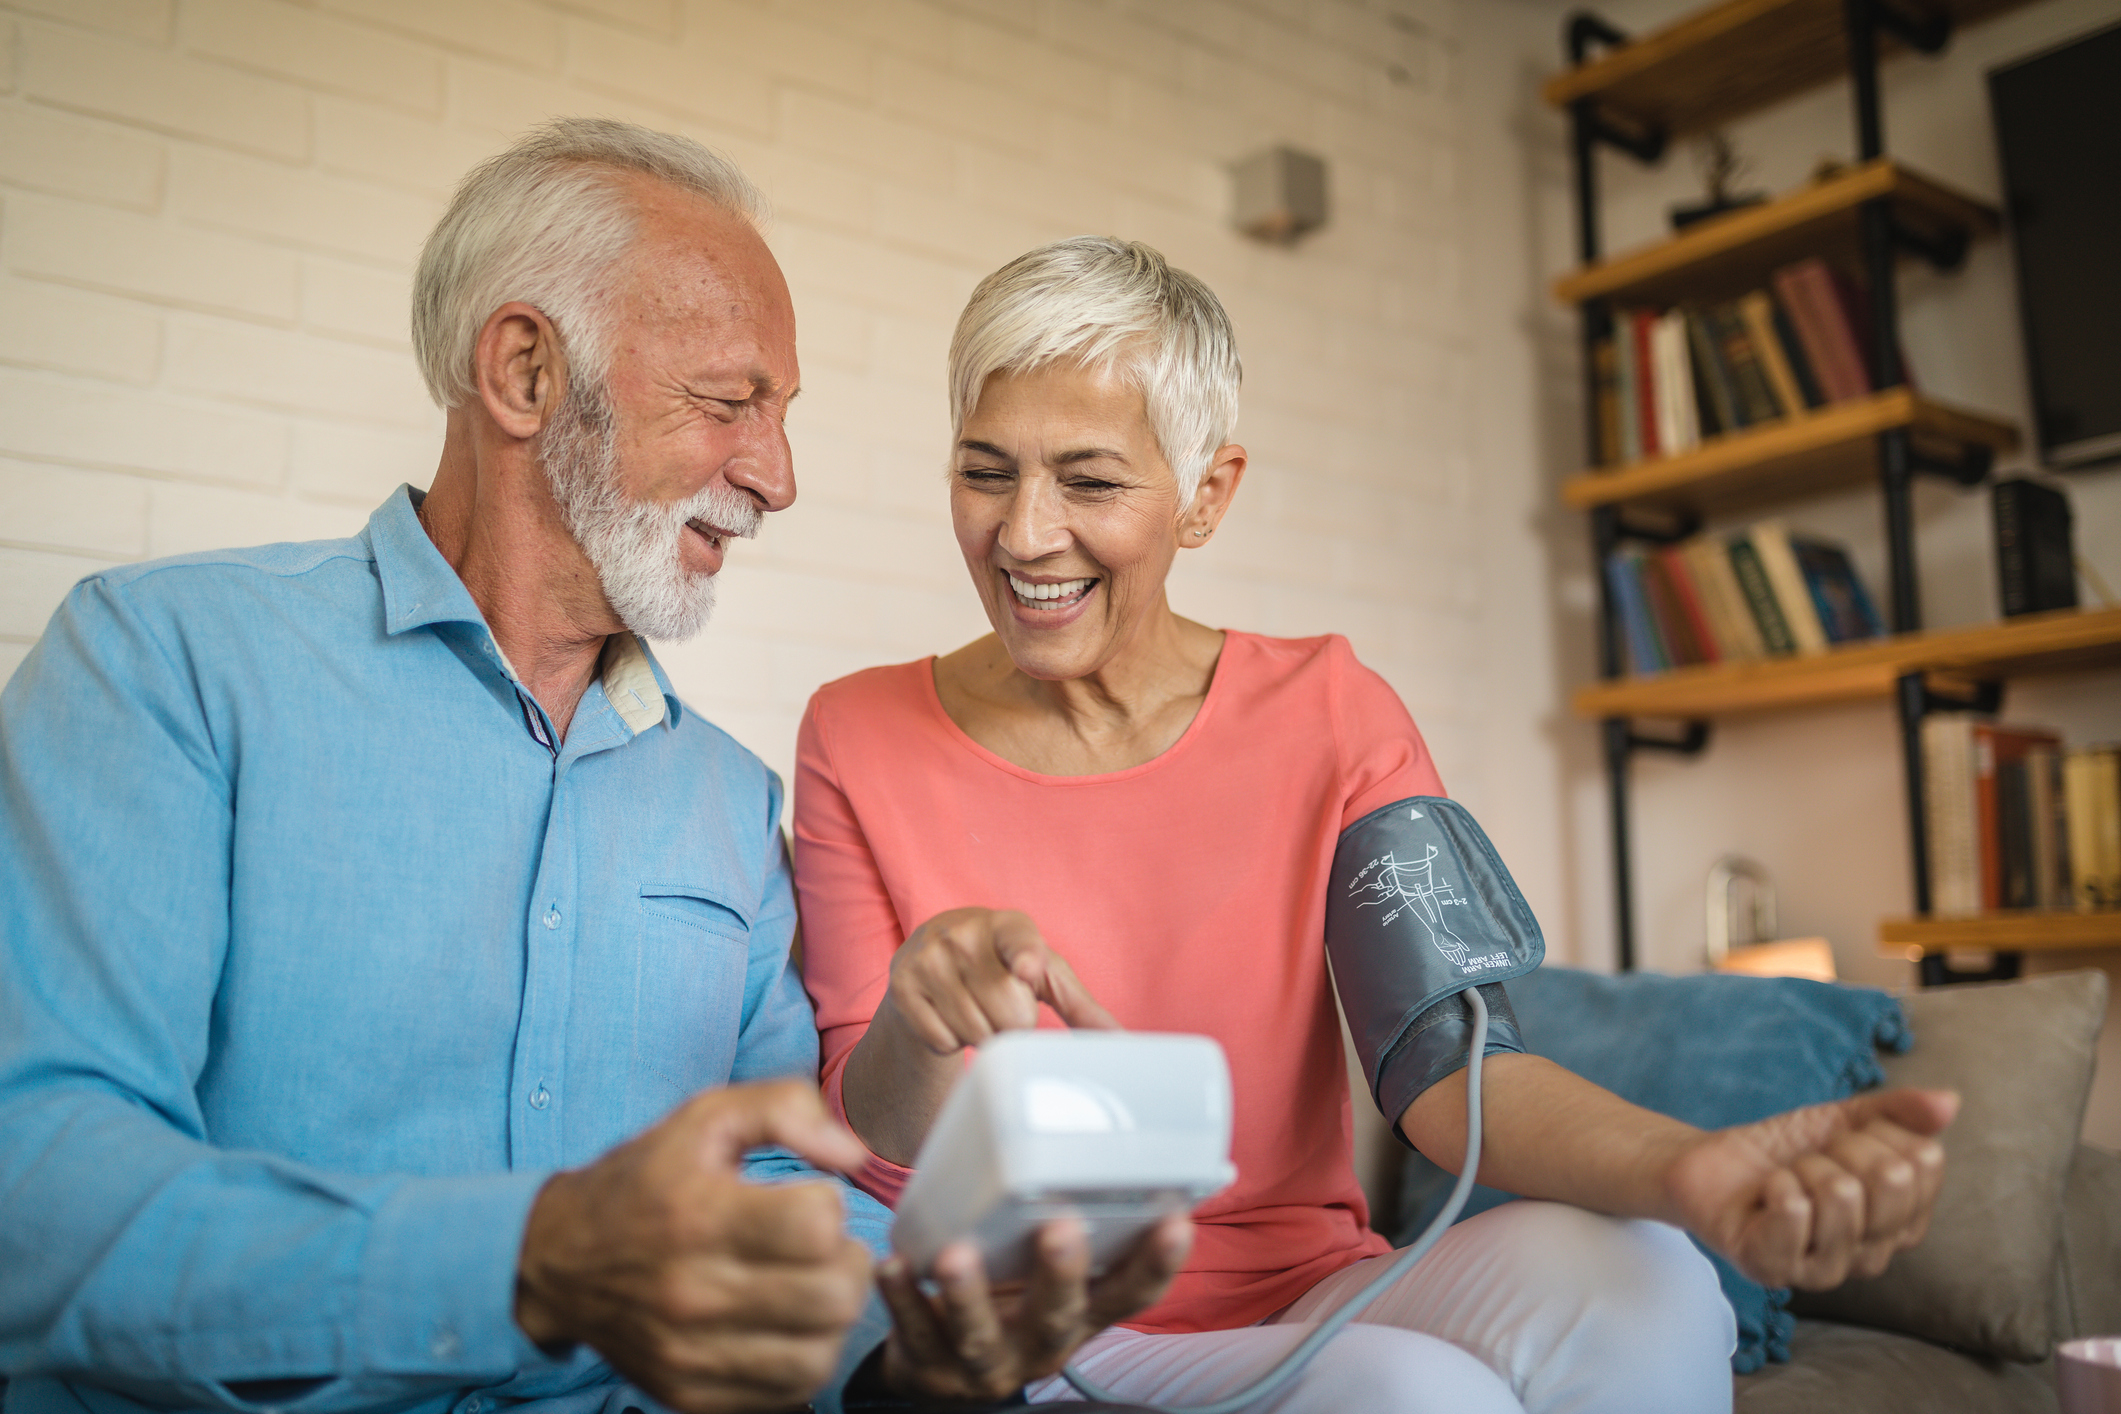 Lovely and cheerful looking senior couple measuring blood pressure to one another at home.